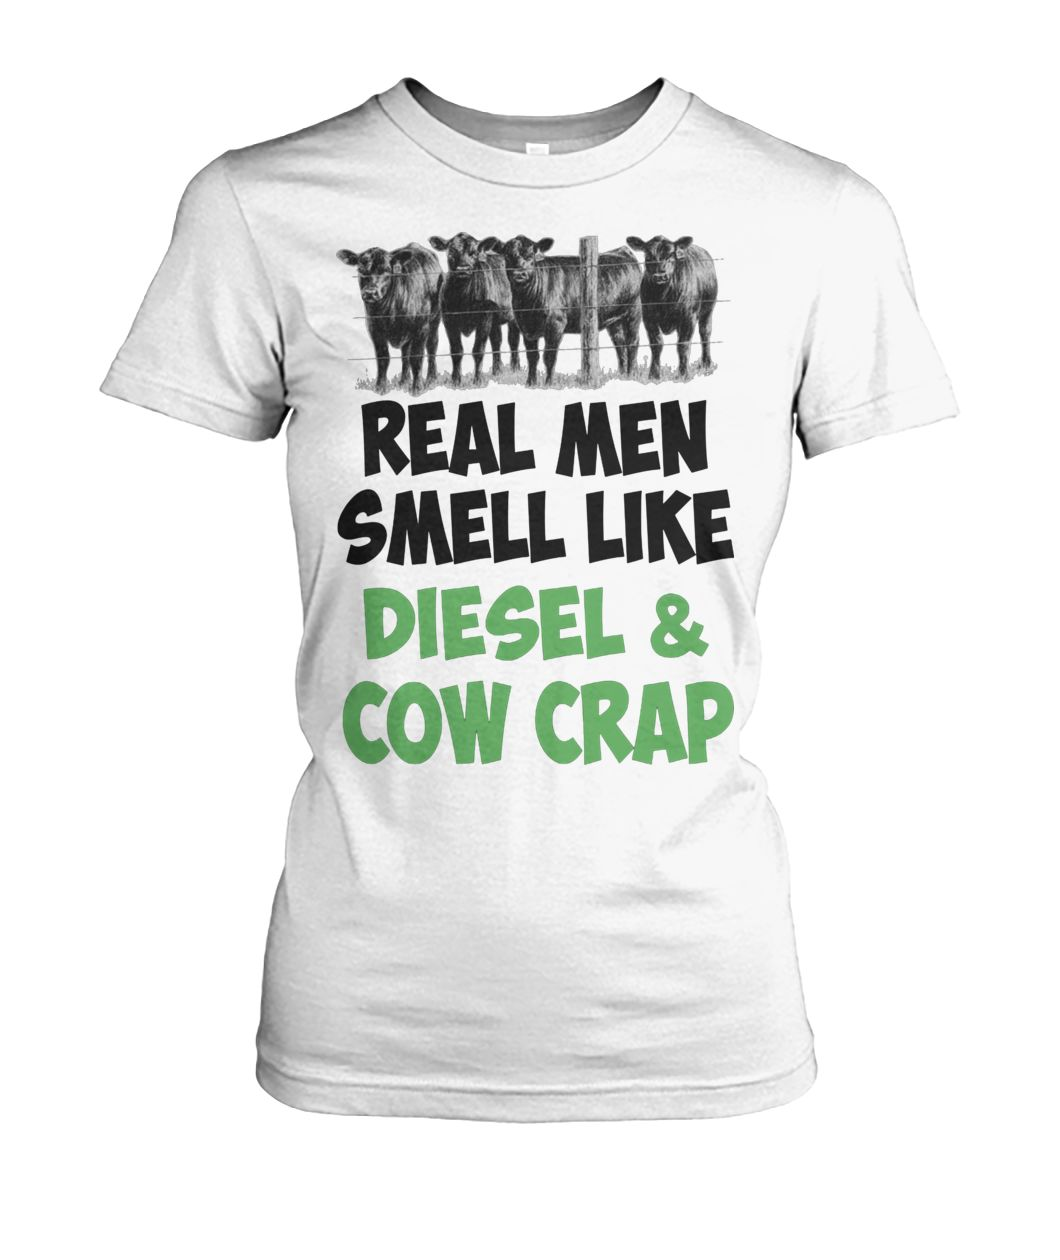 Famer real men smell like diesel and cow crap women's crew tee